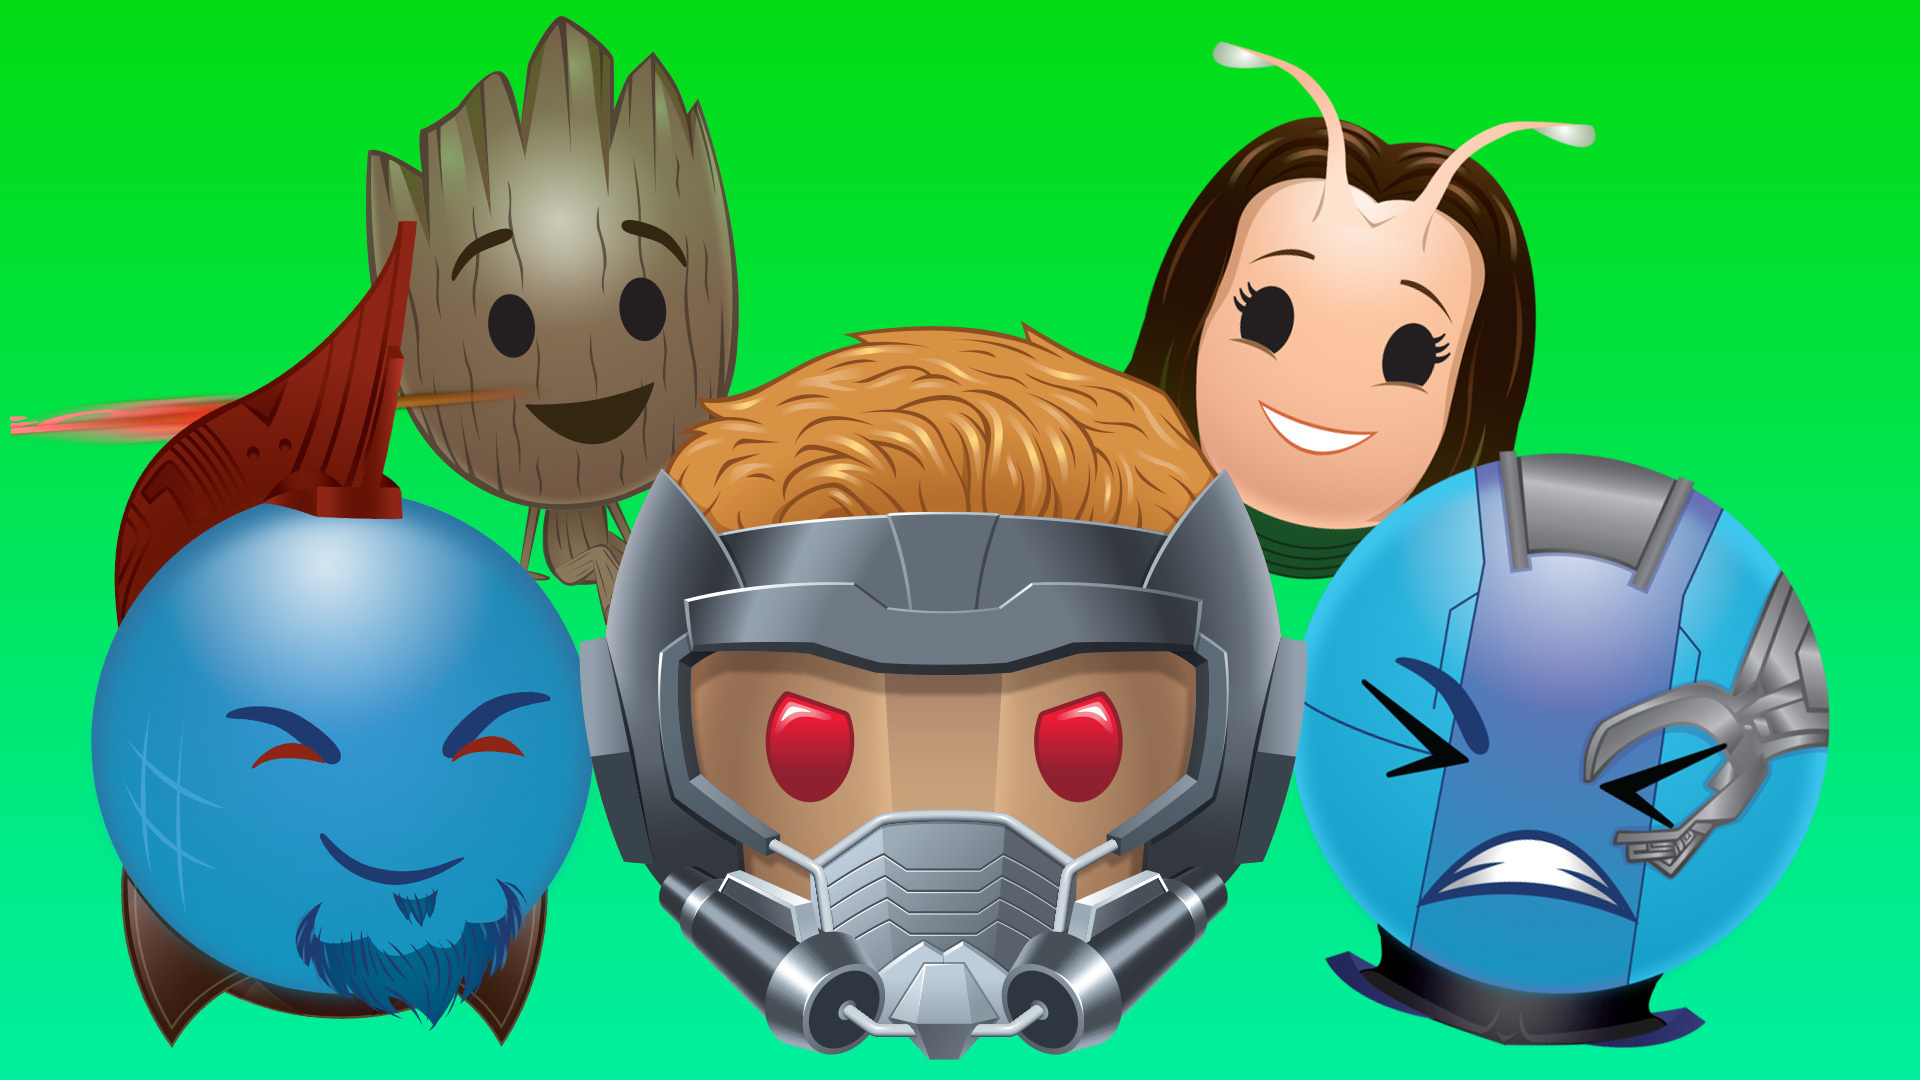 Guardians of the Galaxy Vol. 2 | Disney As Told By Emoji